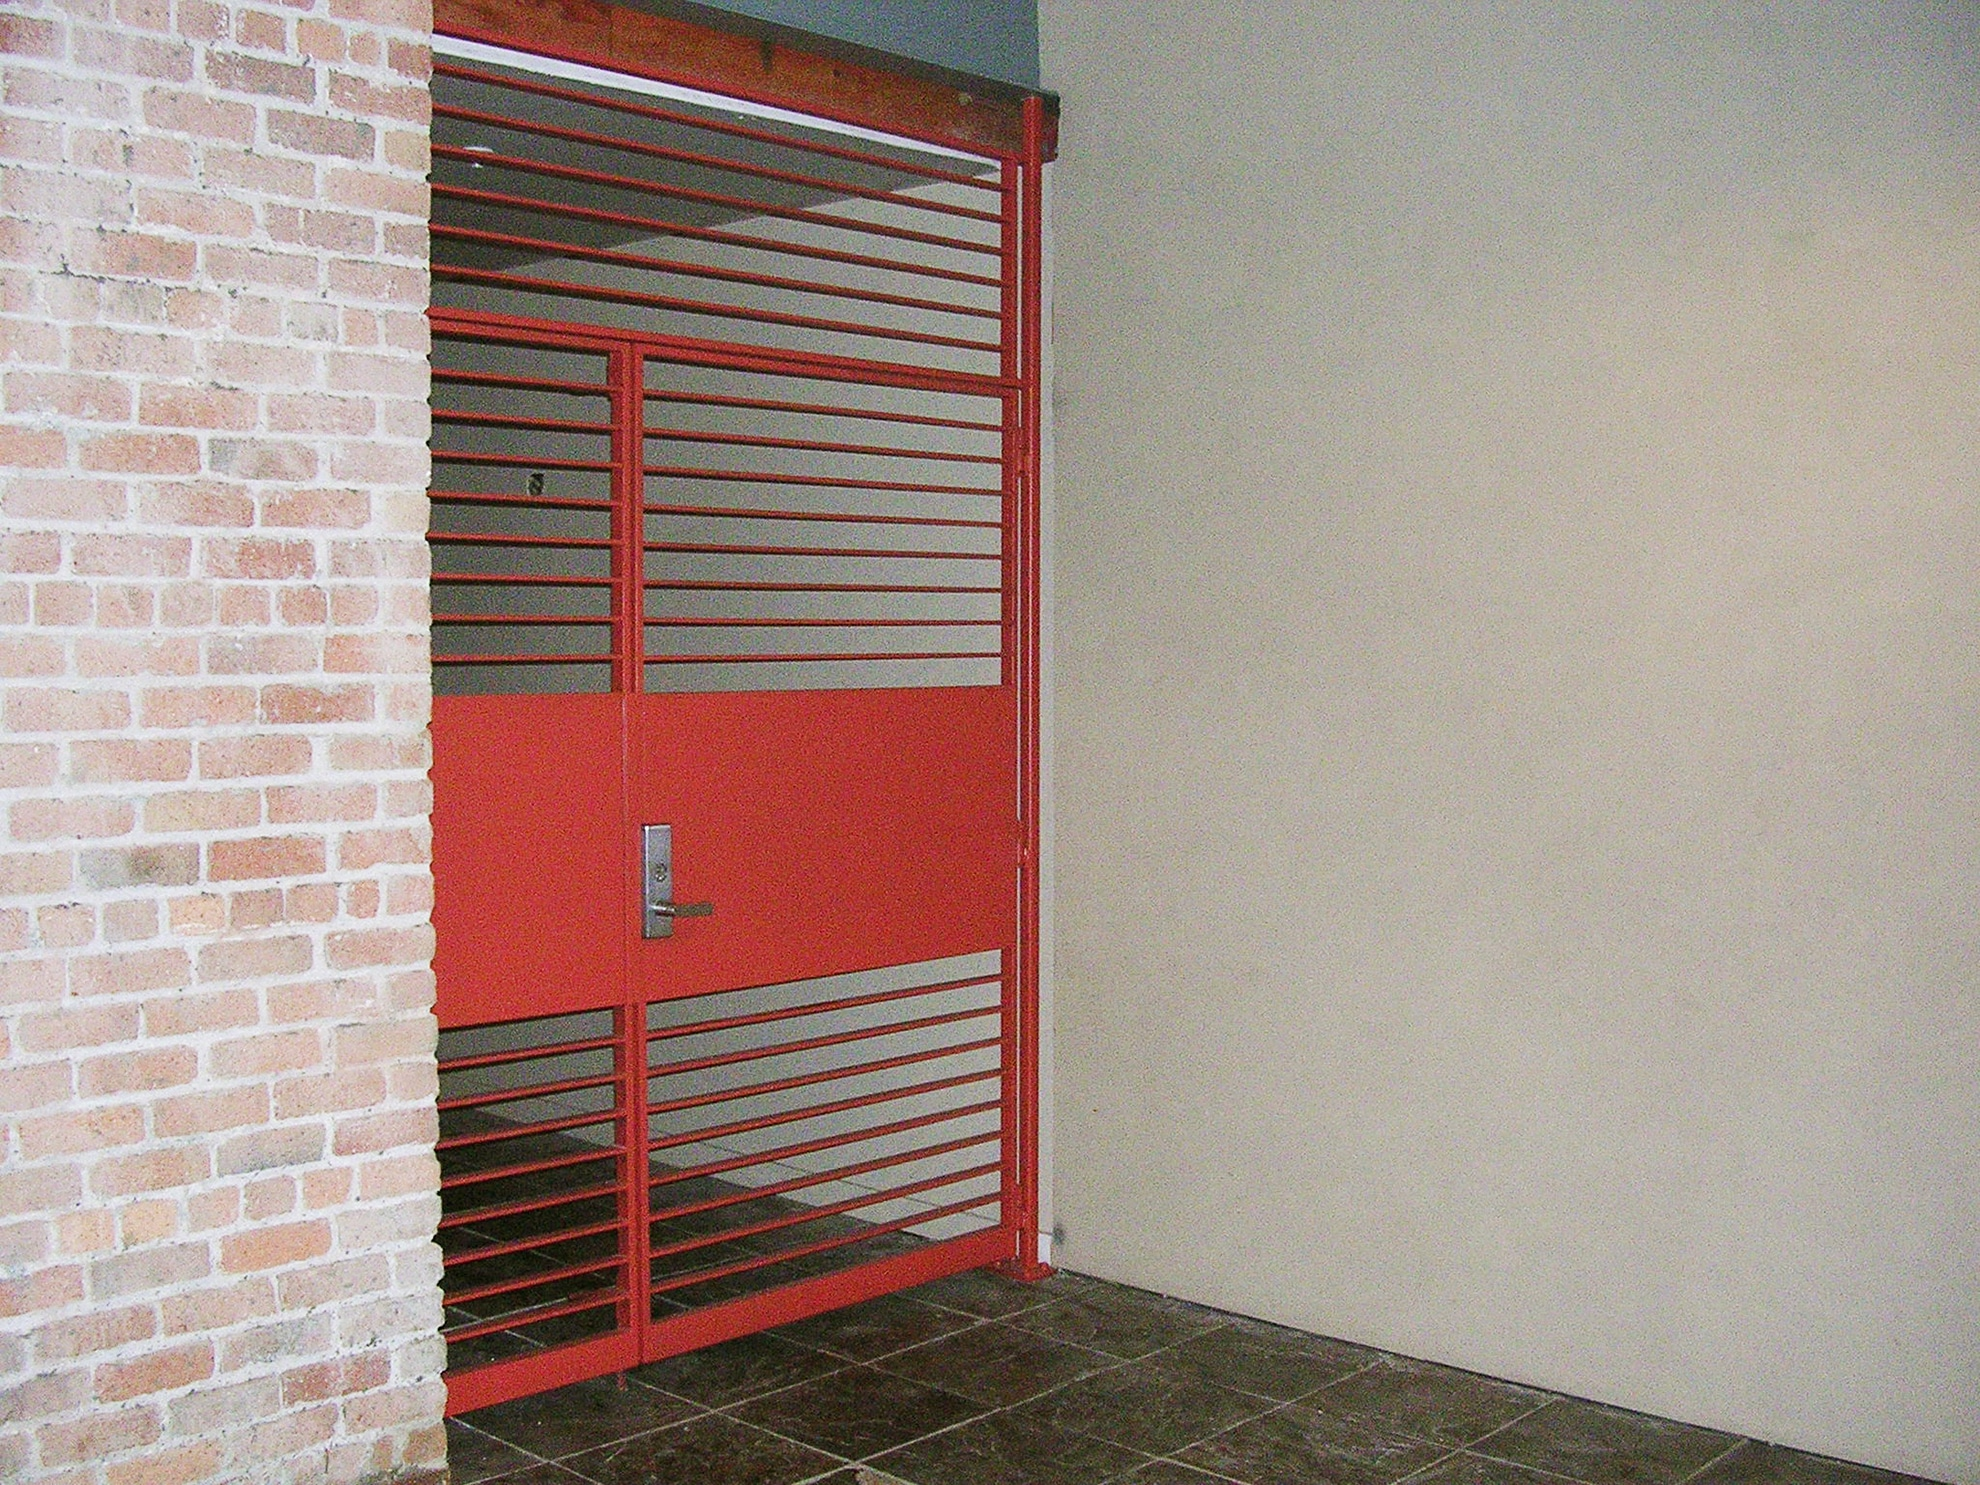 Red entry gate with horizontal bars and panel, metal gate, gate, metal fabrication, metalwork, metal work